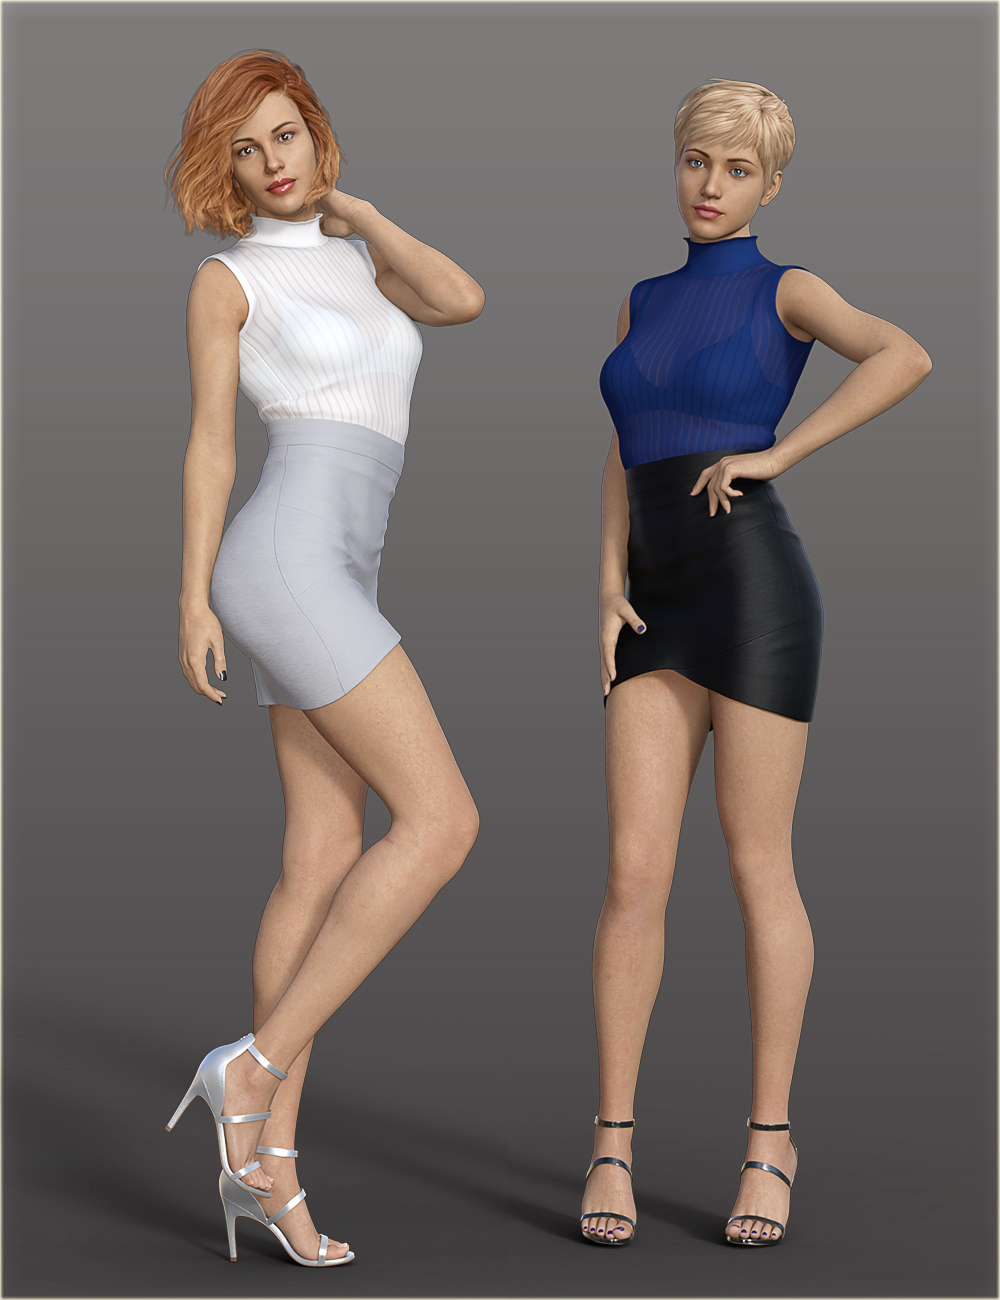 H&C Bandage Mini Skirt Outfit for Genesis 8 Female(s) by: IH Kang, 3D Models by Daz 3D